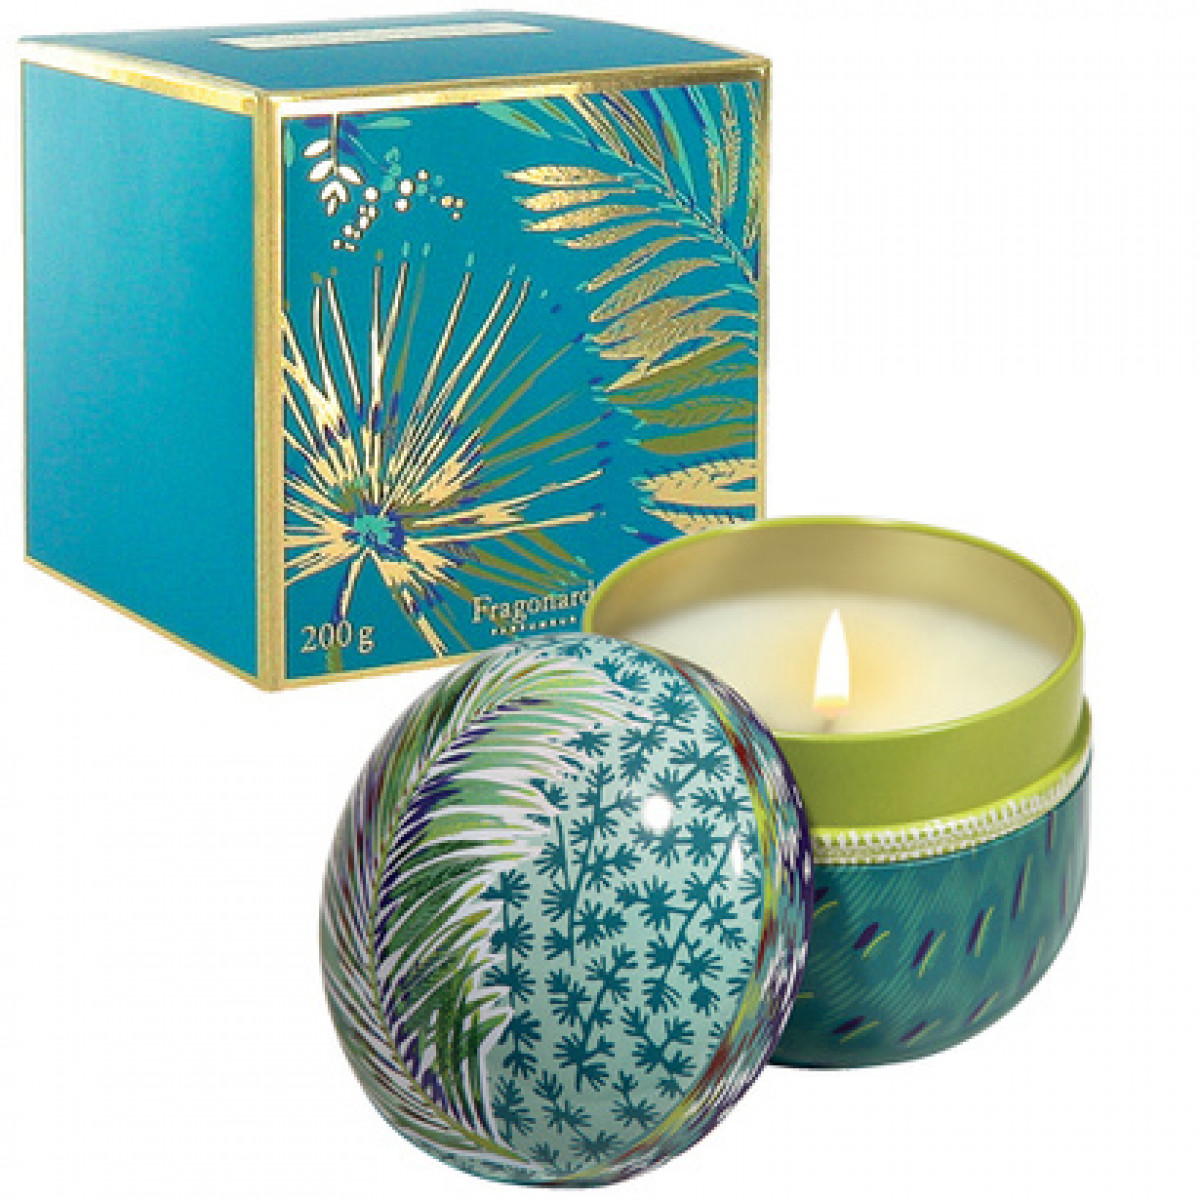 Fragonard Home Fragrance Bougie Parfumée Coriandre Lemongrass 200